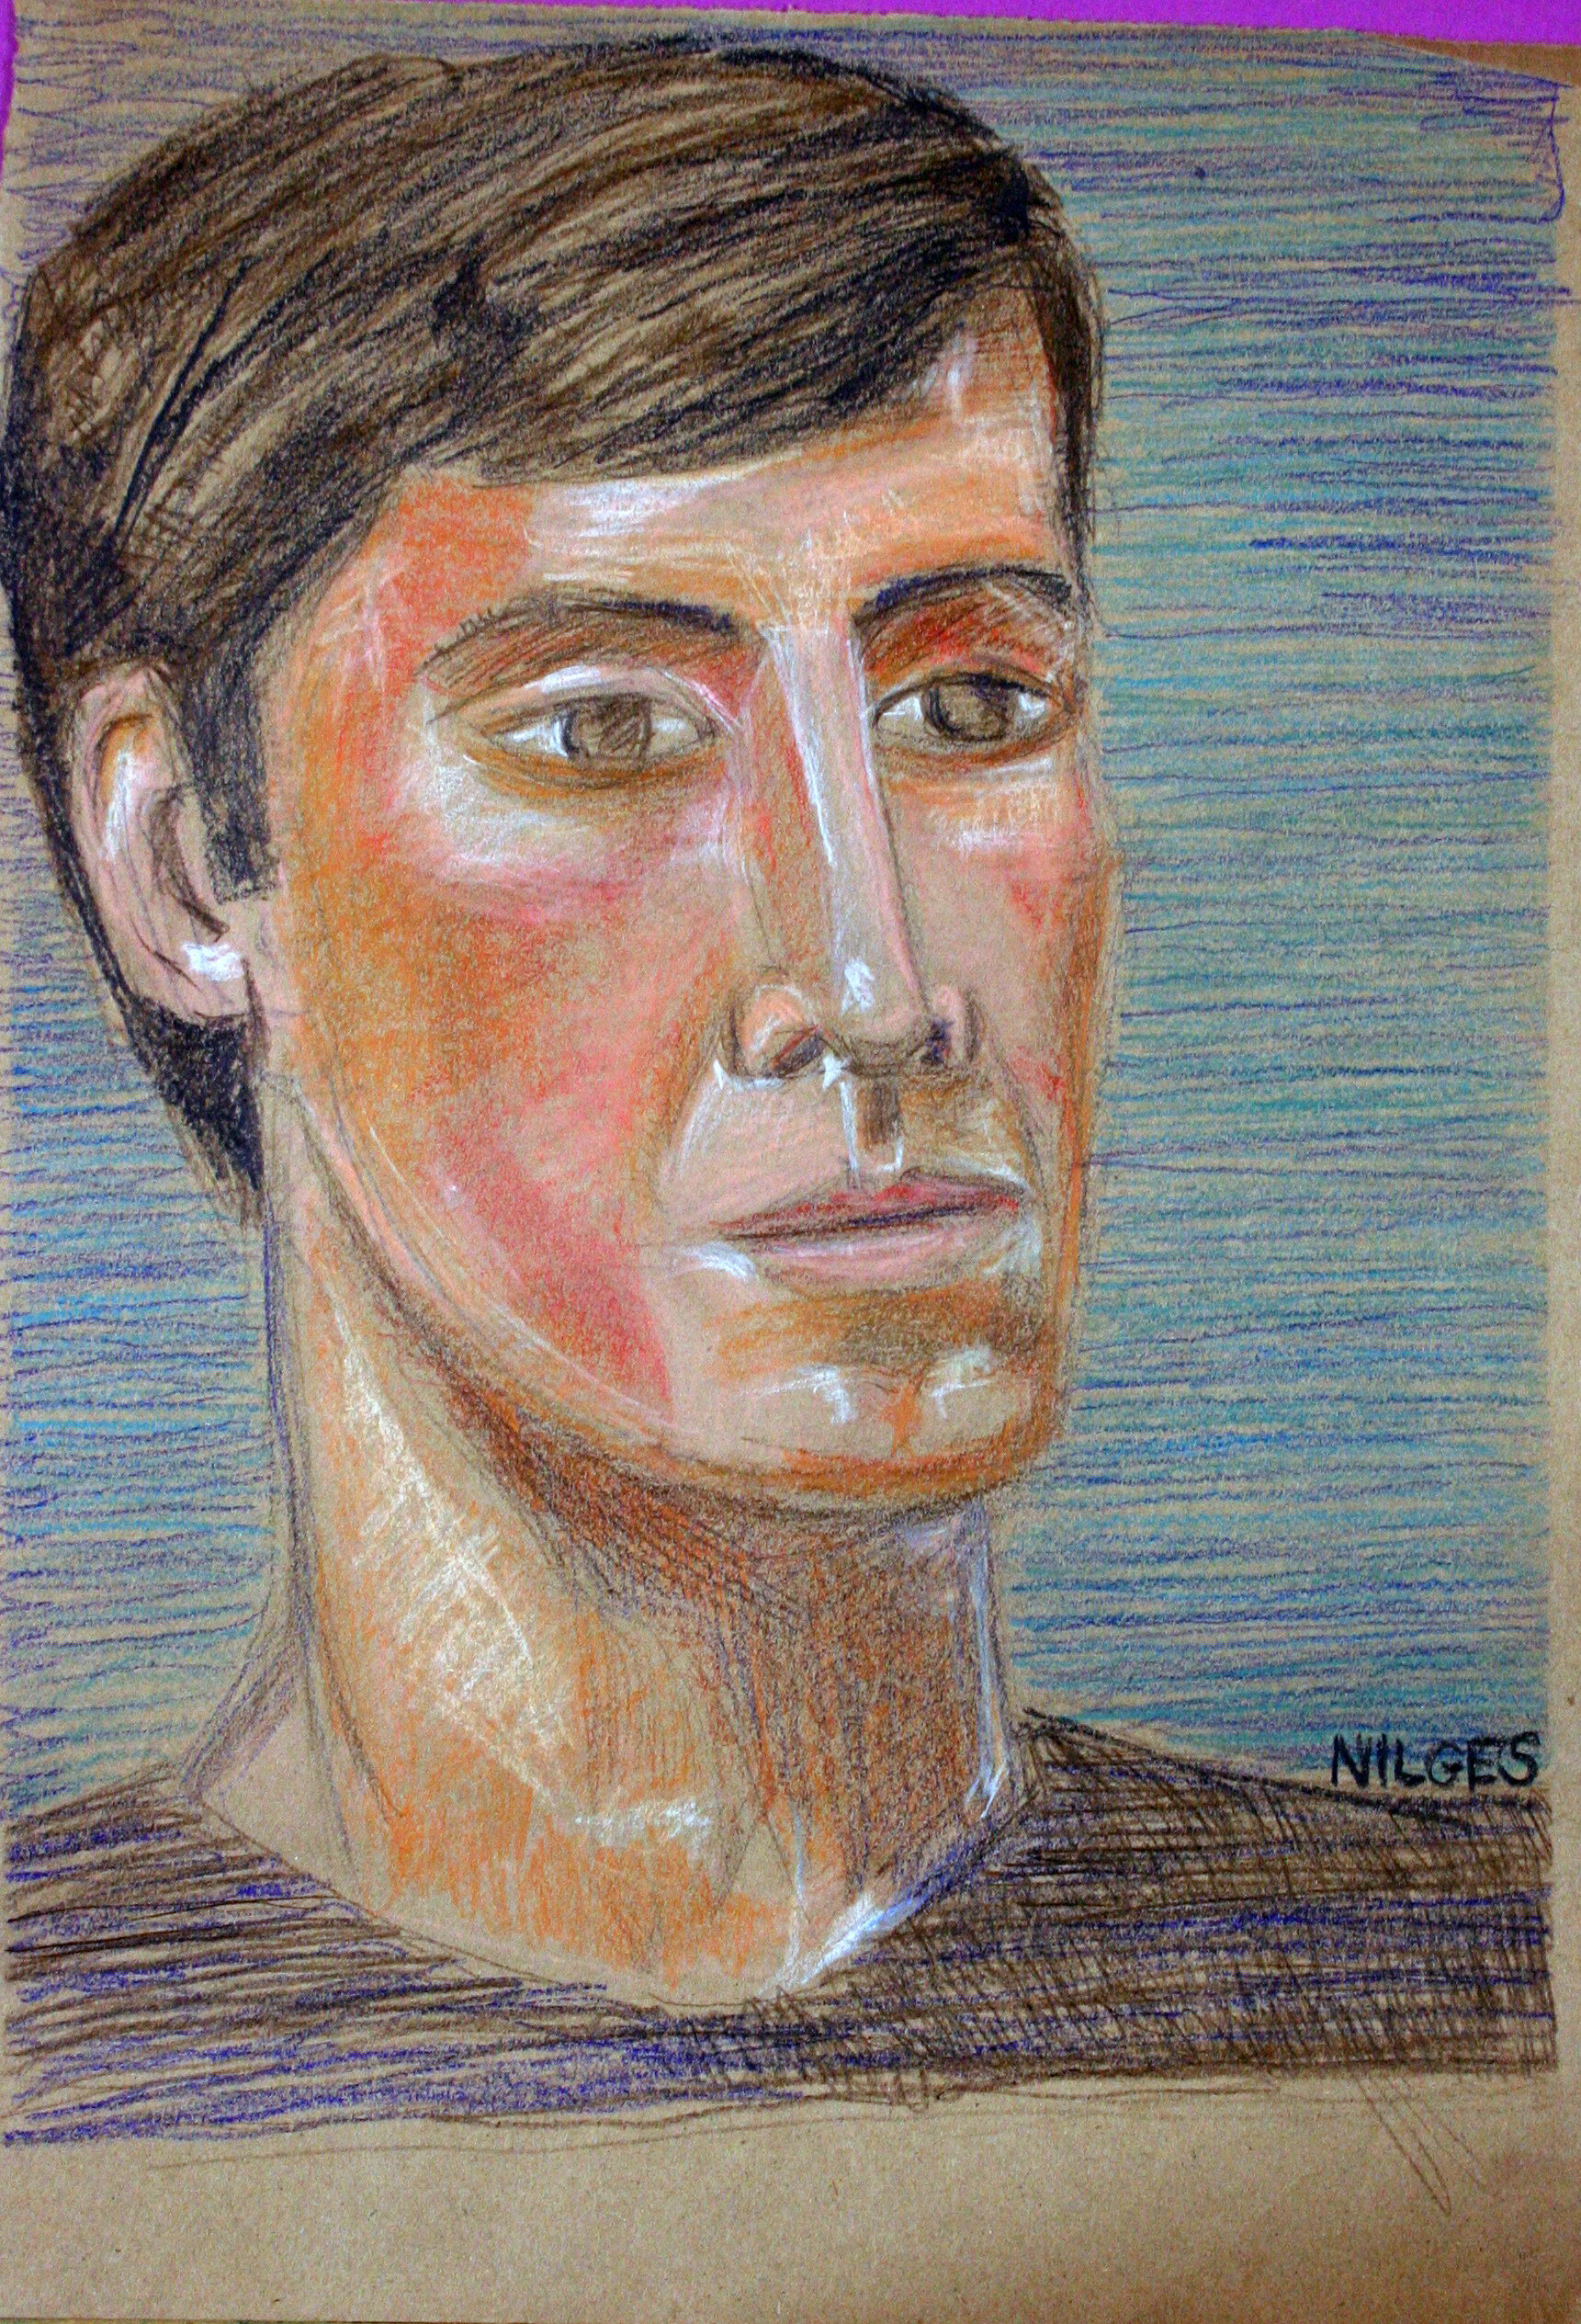 Thomas Nilges - Pastels and conte?